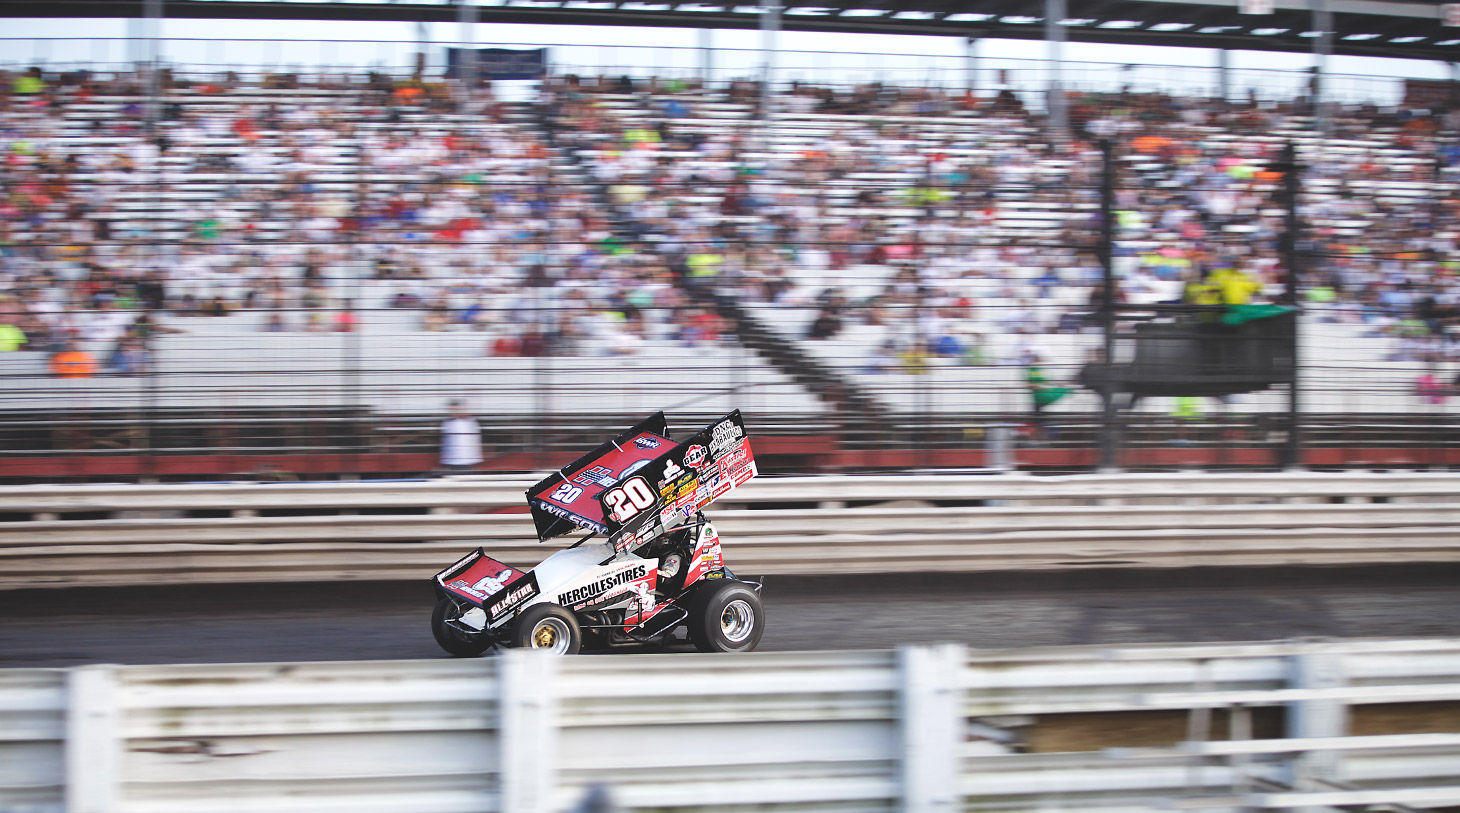 Greg Wilson has captured 1 feature win in his rookie season on The World of Outlaws tour. (Jeffrey Turford / TDP)